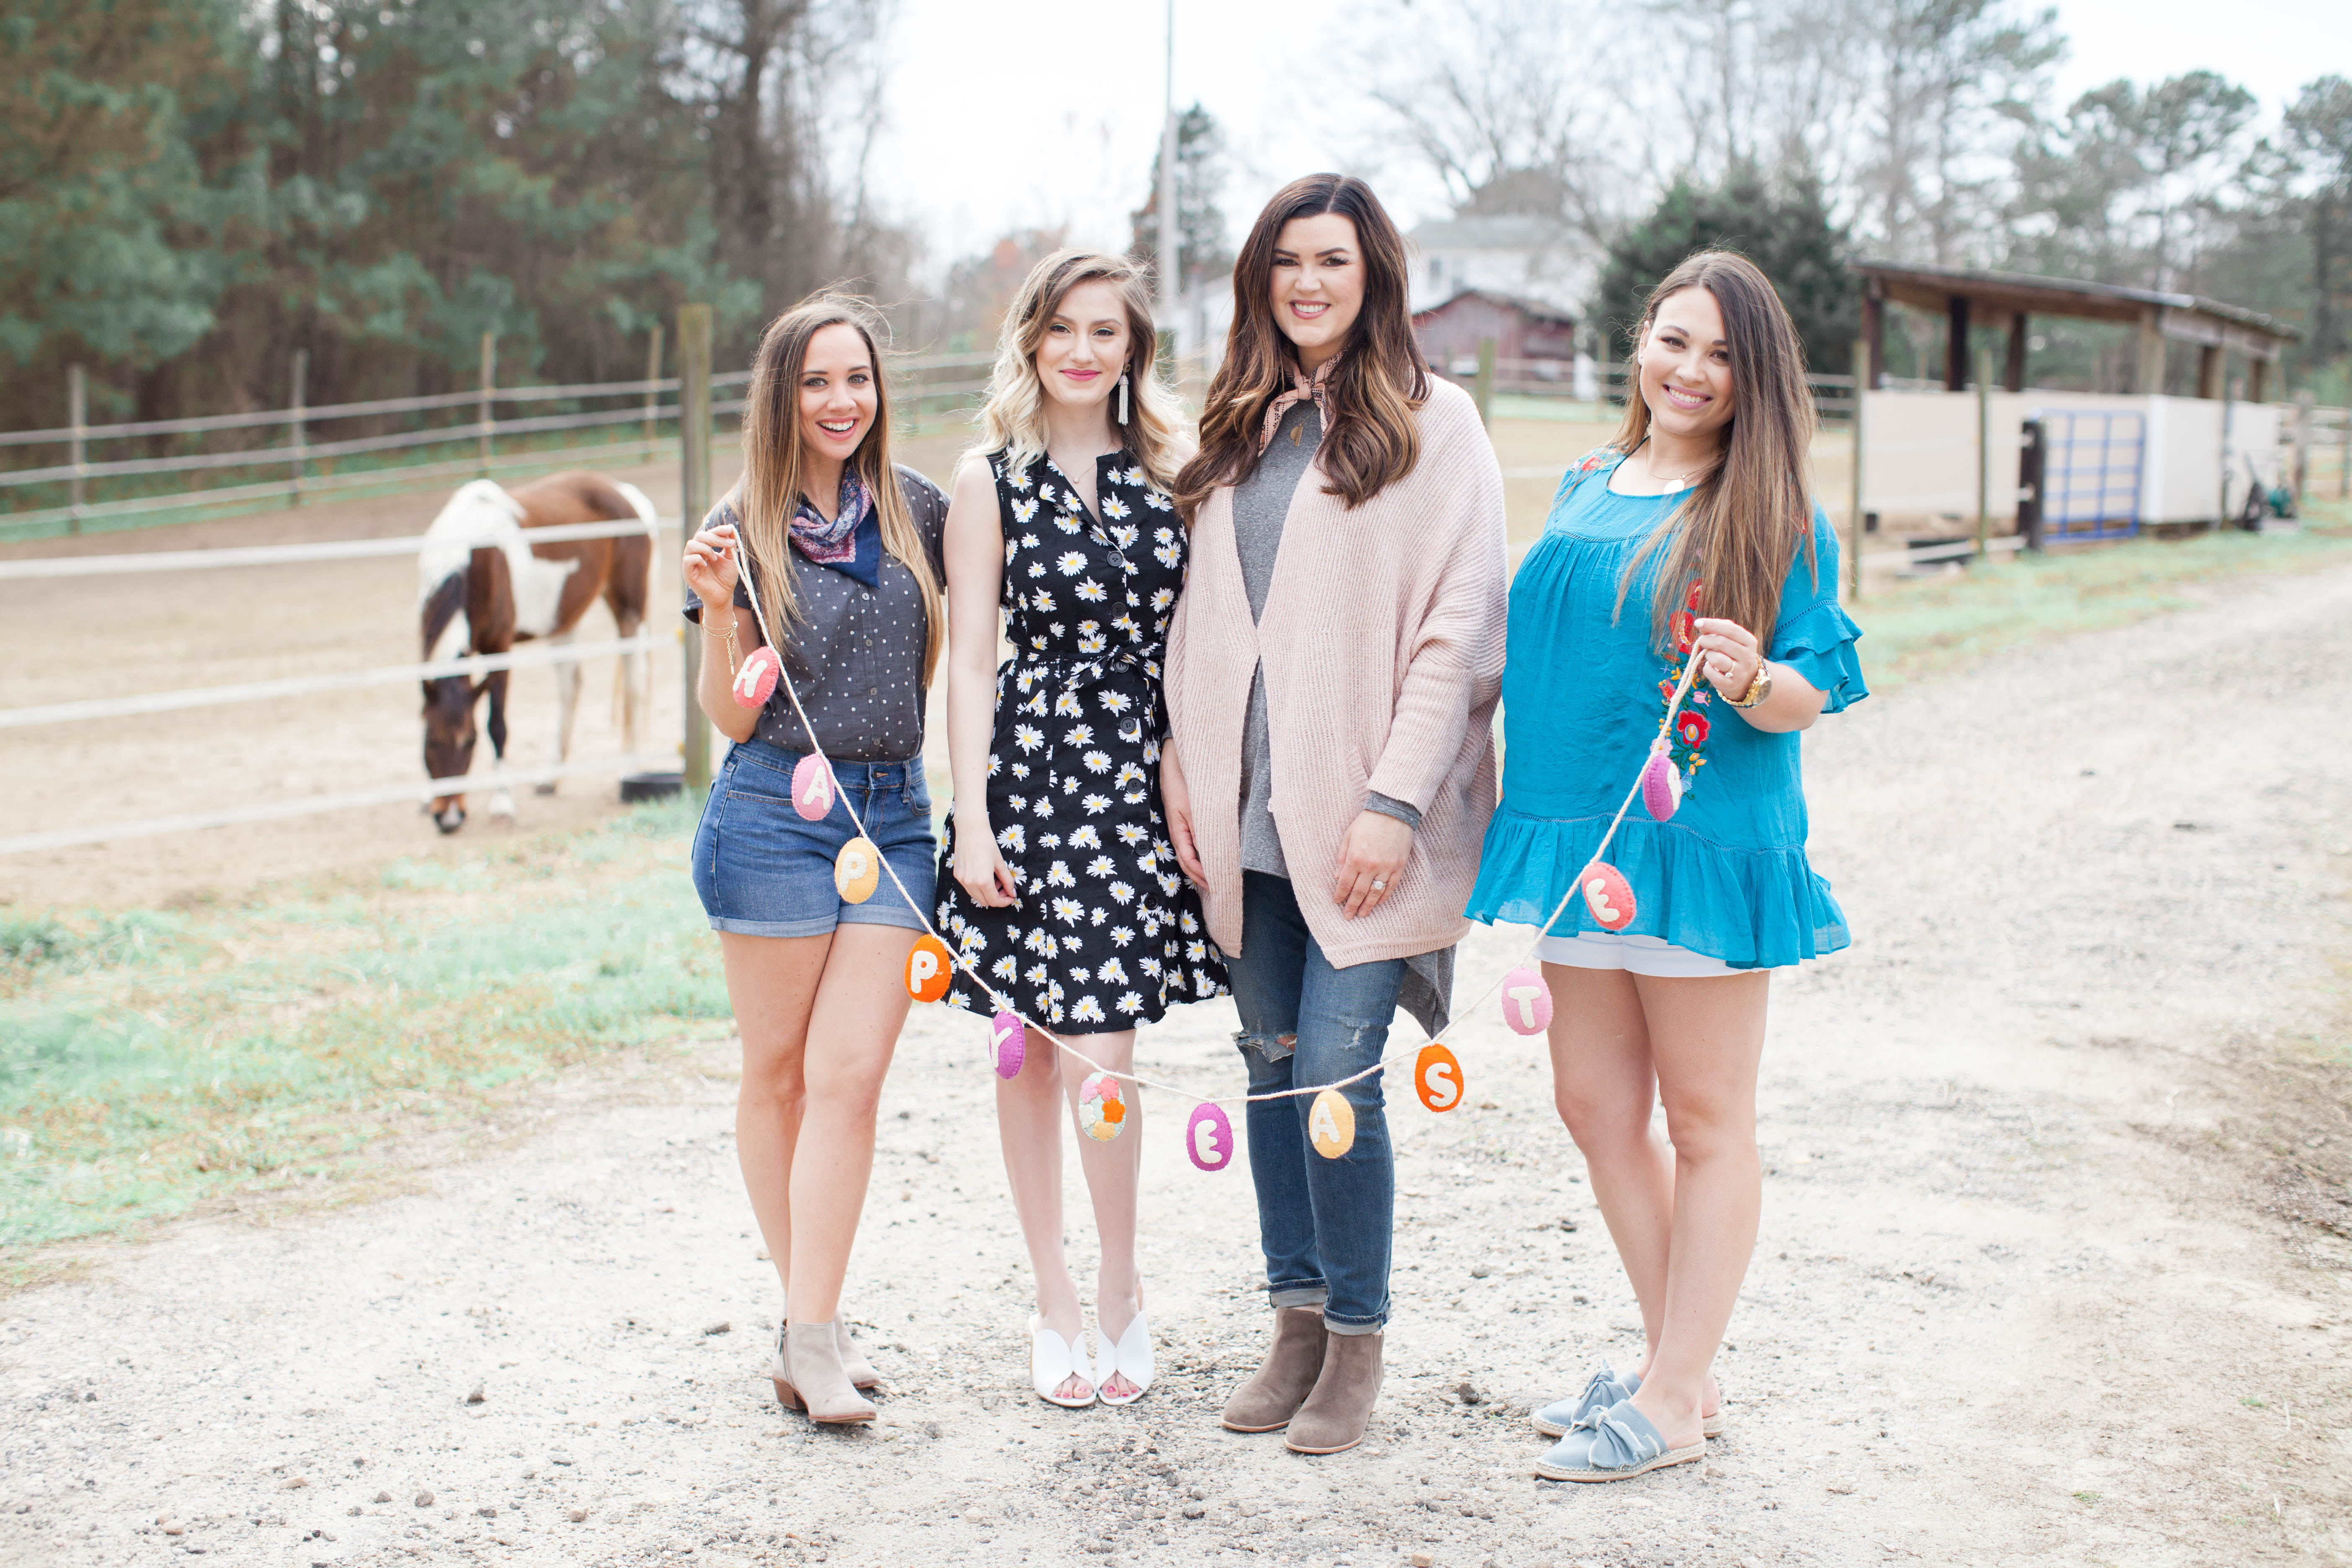 North Carolina fashion and lifestyle bloggers Courtney from Courtney Fashionista, Jessica Linn from Linn Style, Lindsey from Baubles and Backdrops, and Stephanie from A Style of Her Own. Photography by Hayley Gastiger at Valentine Fields Farm in Knightdale NC.